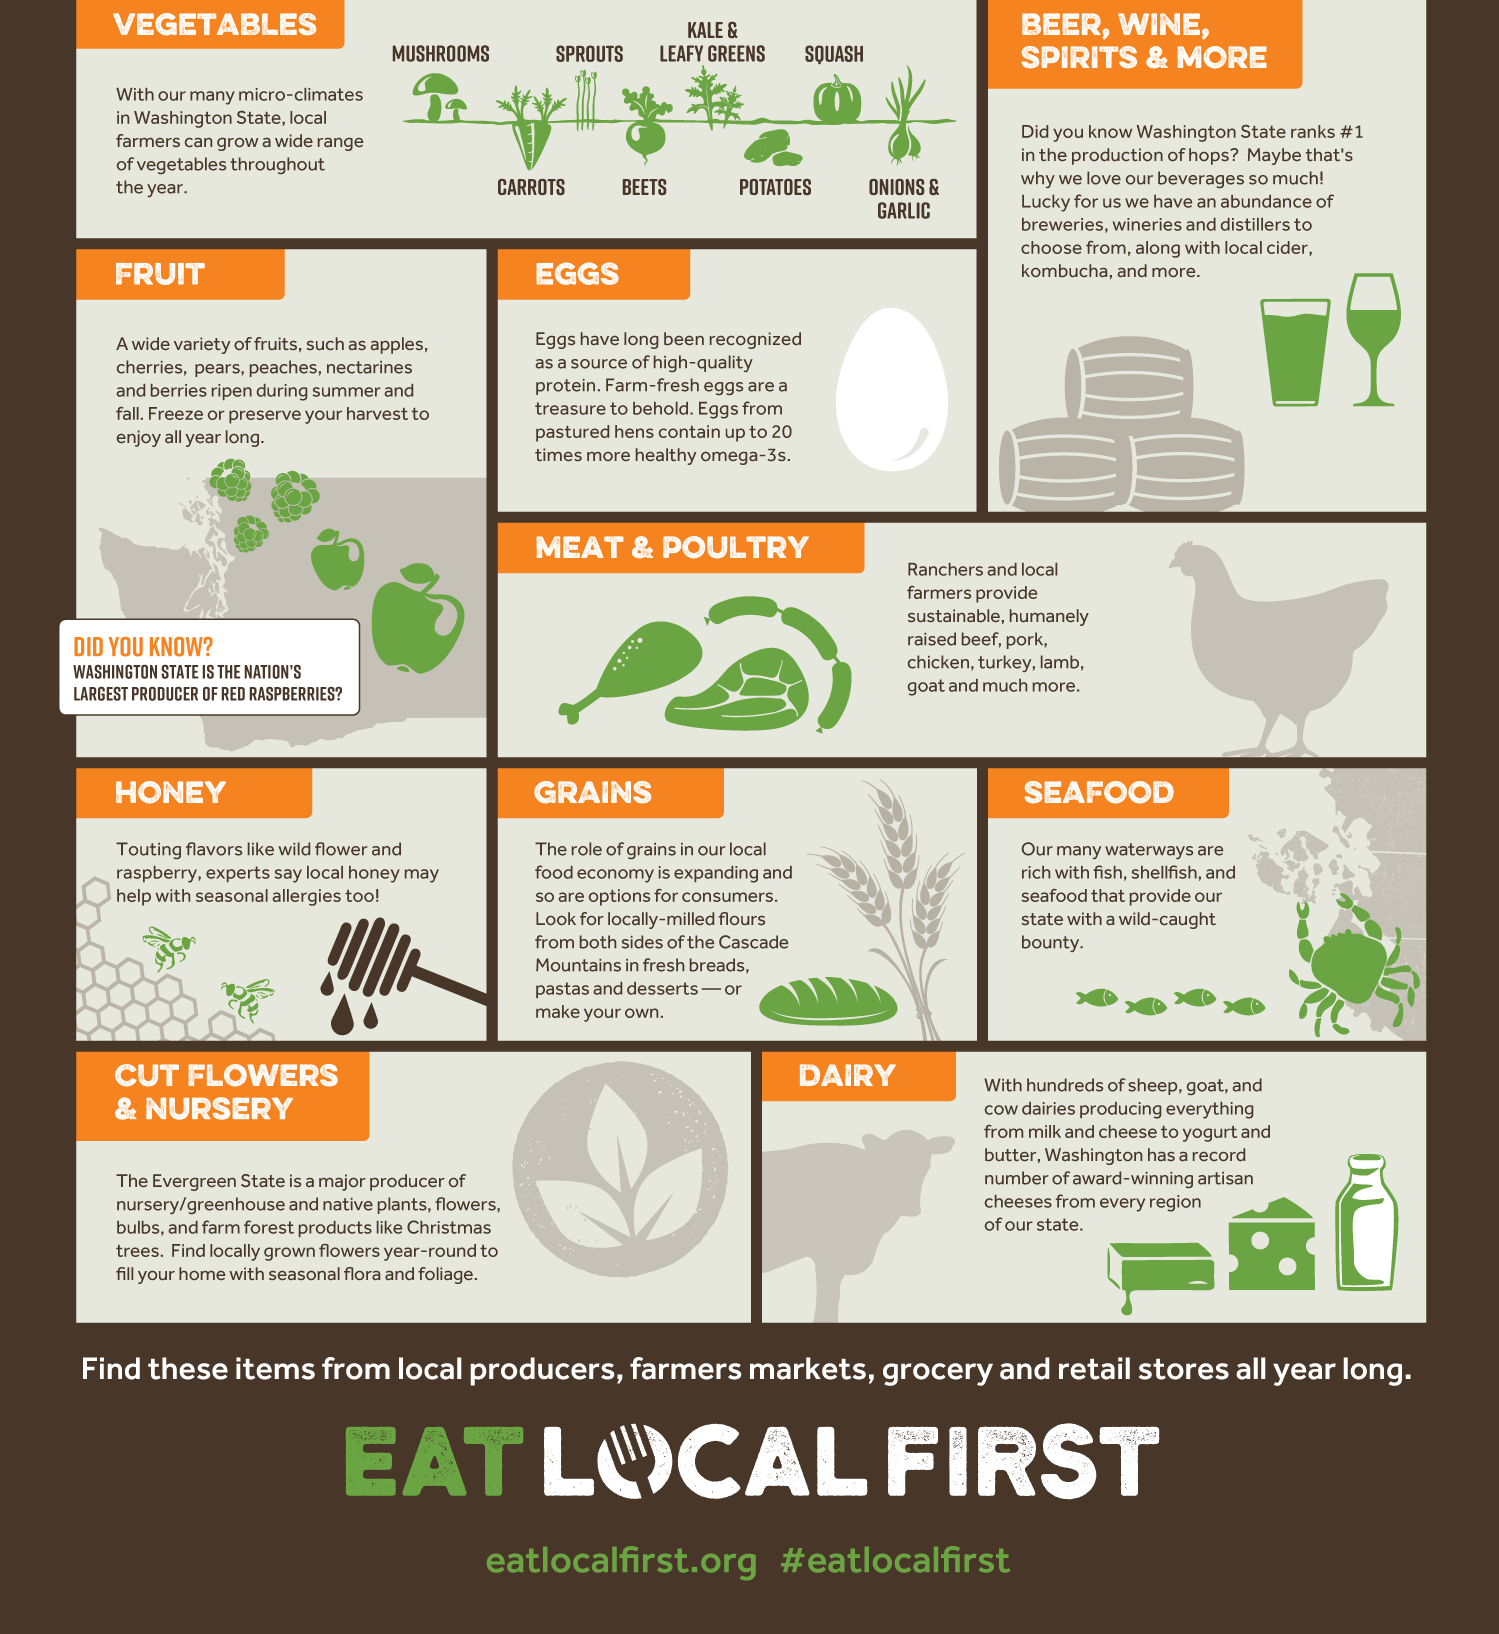 Infographic of 10 foods to eat year-round in WA State: veggies, fruit, eggs, beverages, meat and poultry, honey, grains, seafood, flowers and nursery products, dairy